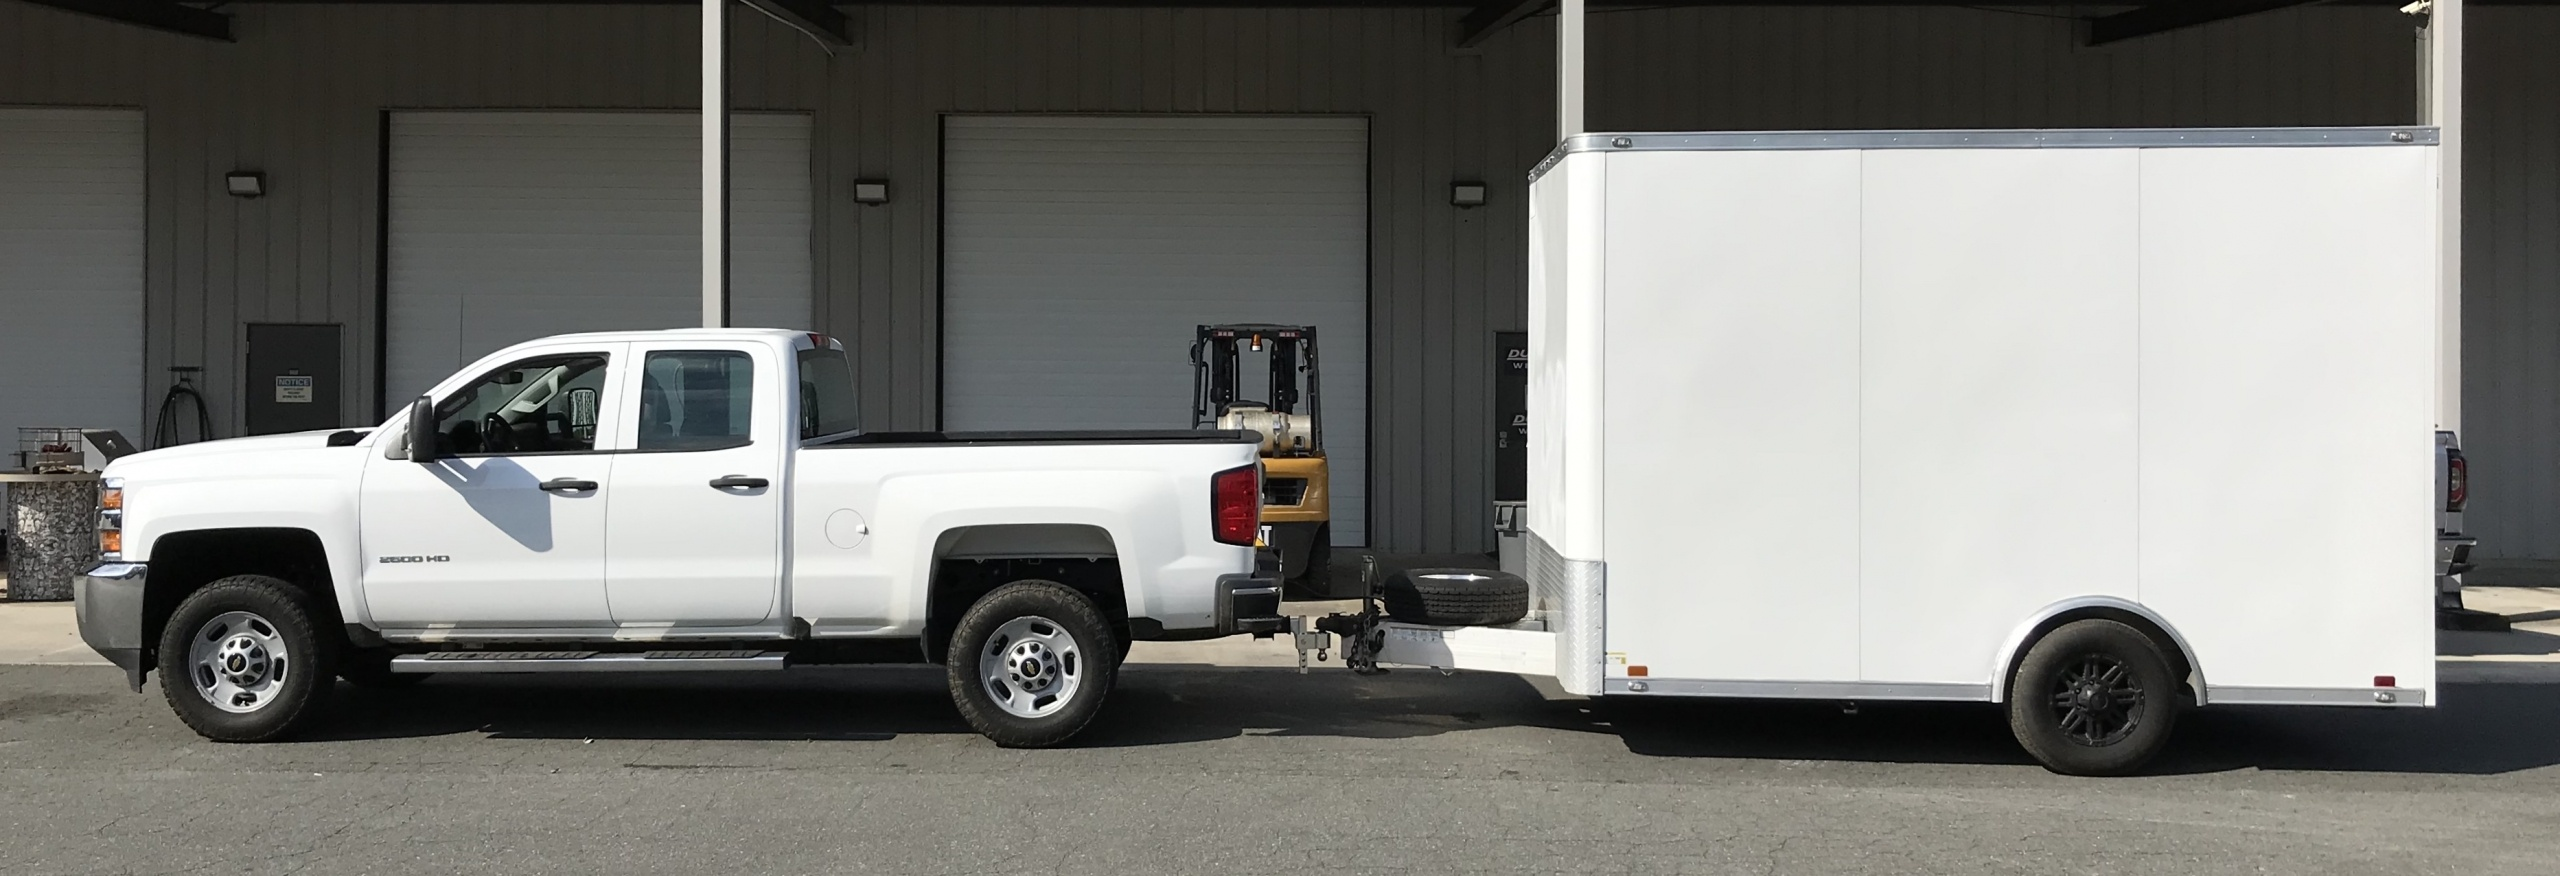 small marketing trailer towing